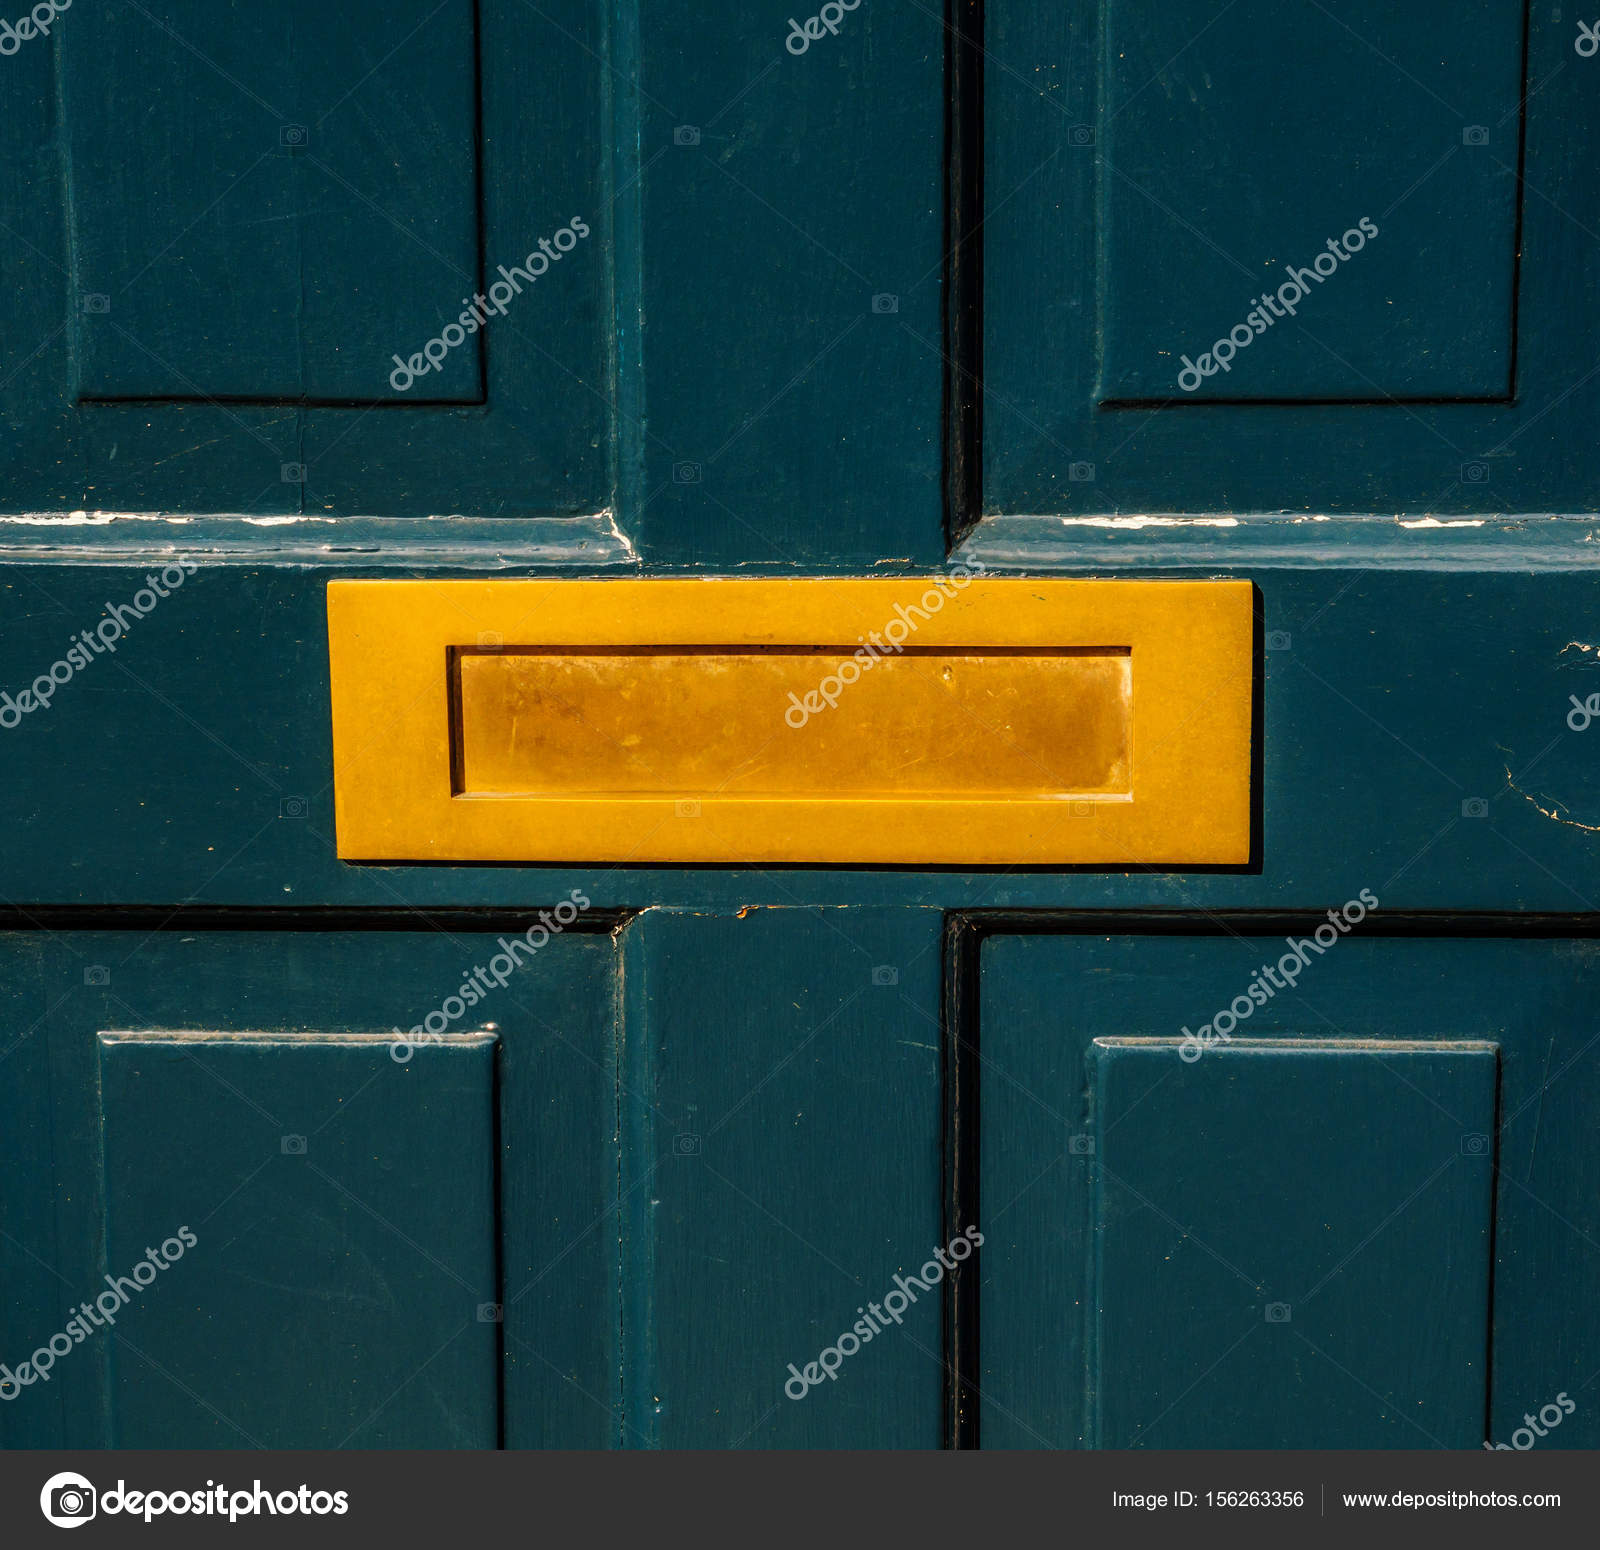 Old letterbox in the door traditional way of delivering letters \u2014 Stock Photo #156263356 & Old letterbox in the door traditional way of delivering letters ...